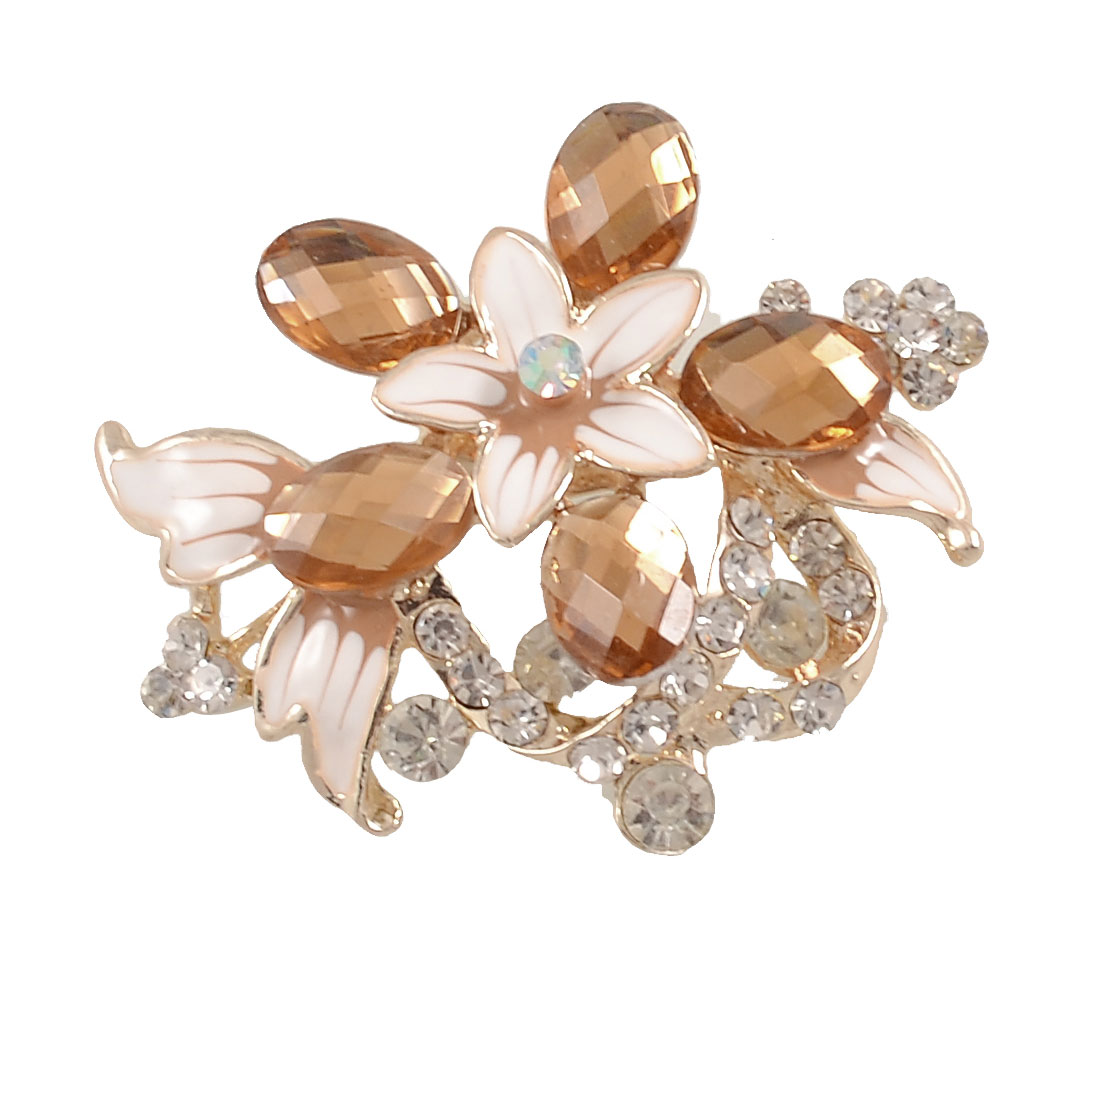 Clear Amber Color Rhinestone Metal Flower Decor Safety Pin Breastpin Brooch for Lady